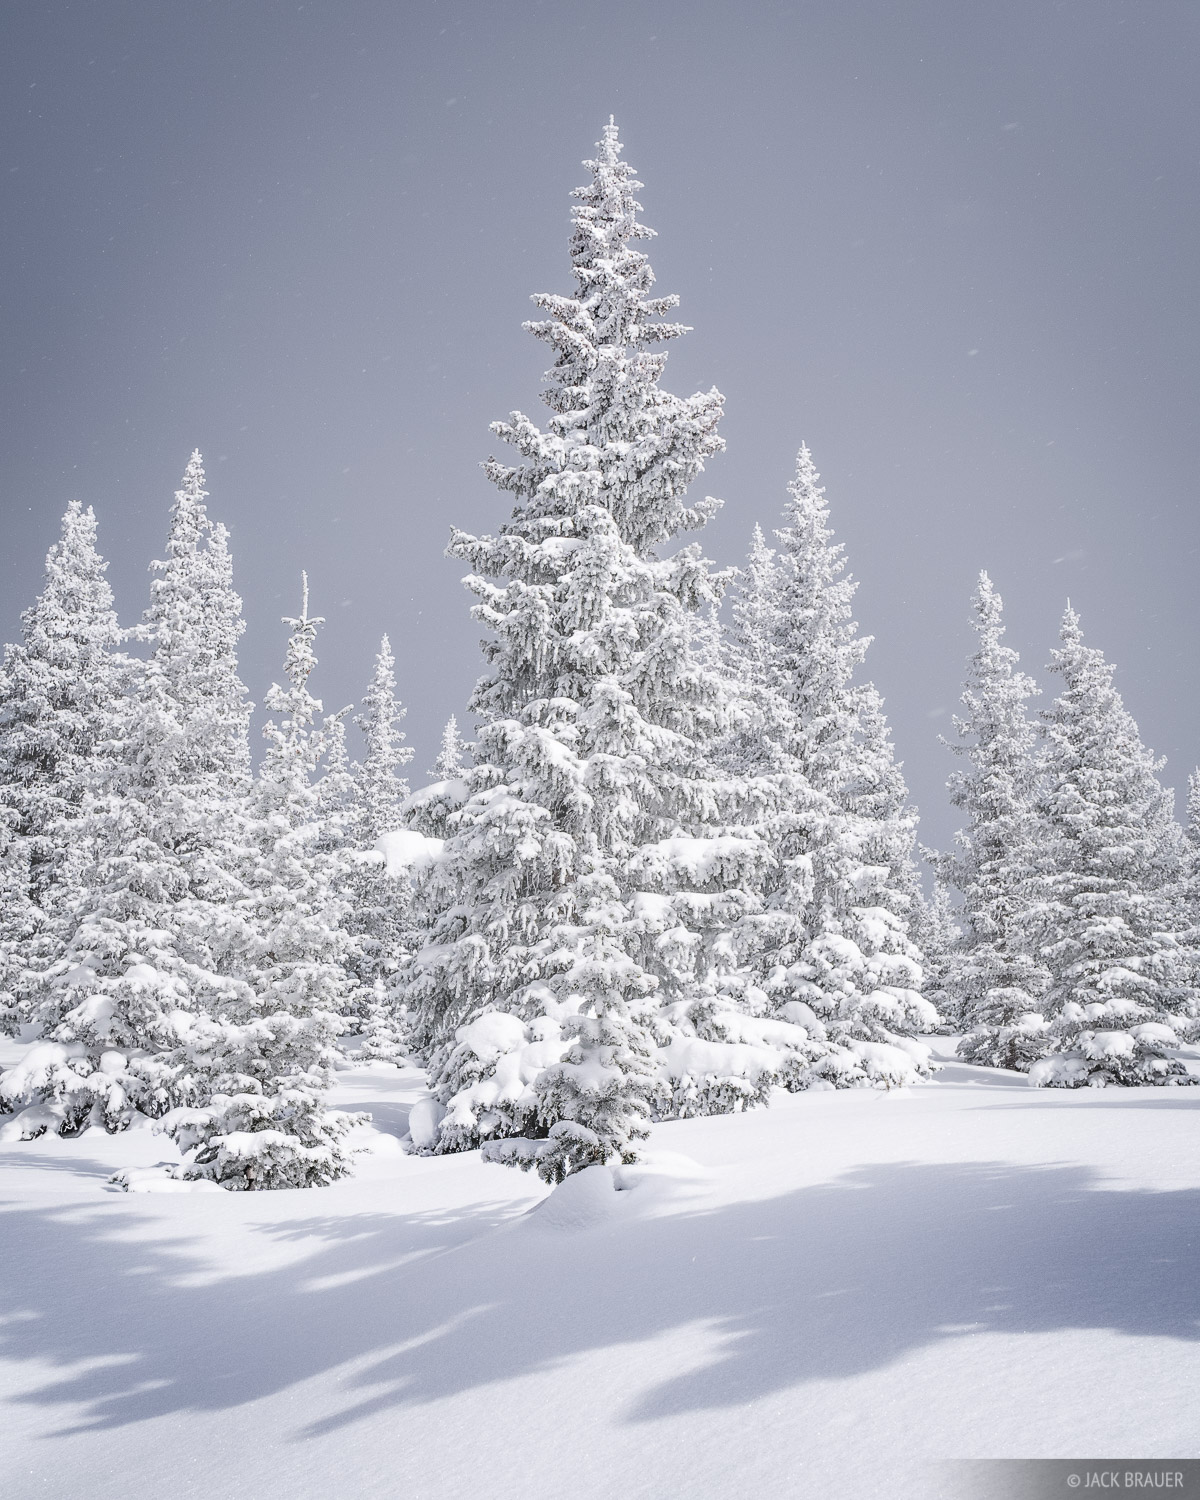 New Mexico, Santa Fe, snow, trees, Sangre de Cristo Mountains, photo